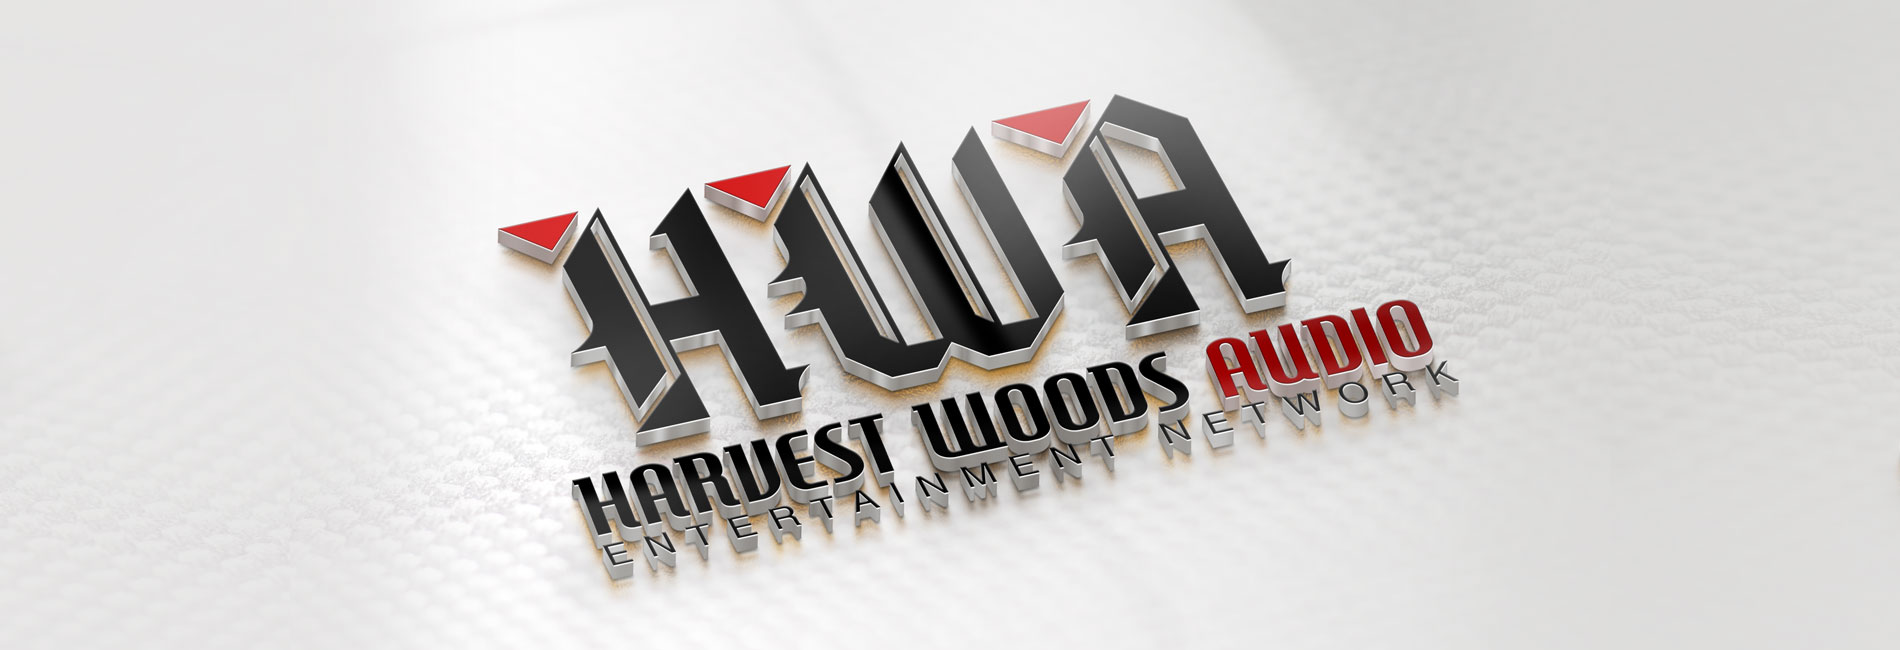 harvest woods audio logo